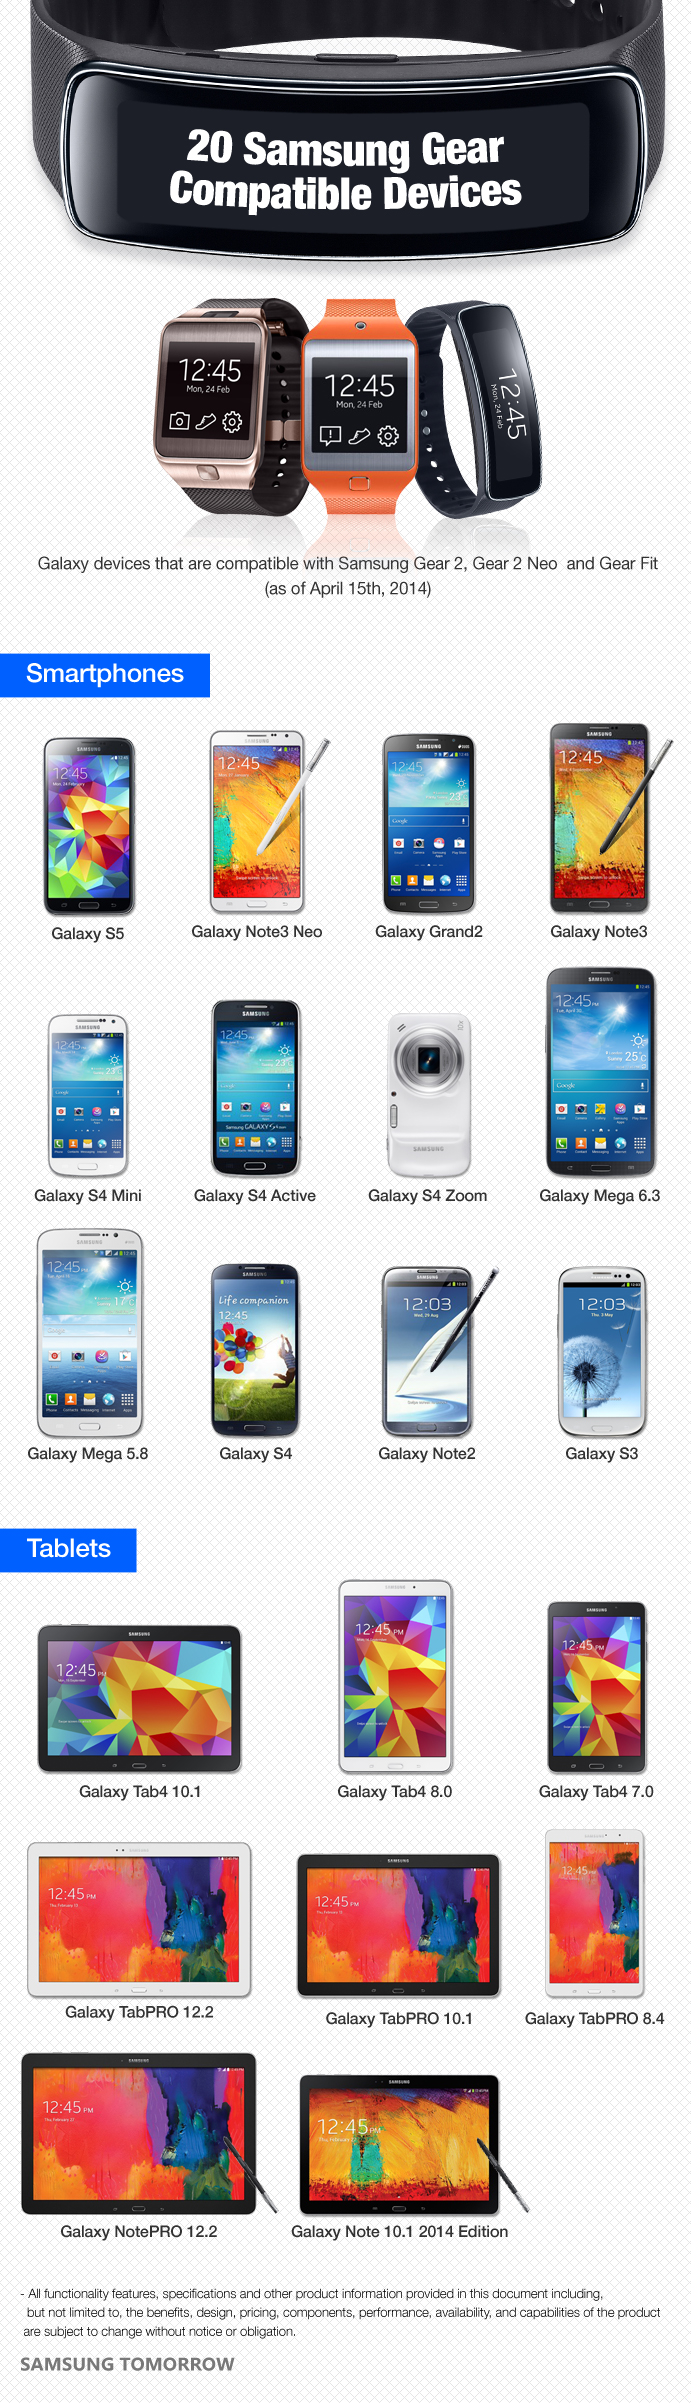 Samsung Gear Devices Compatible with 20 Galaxy Devices